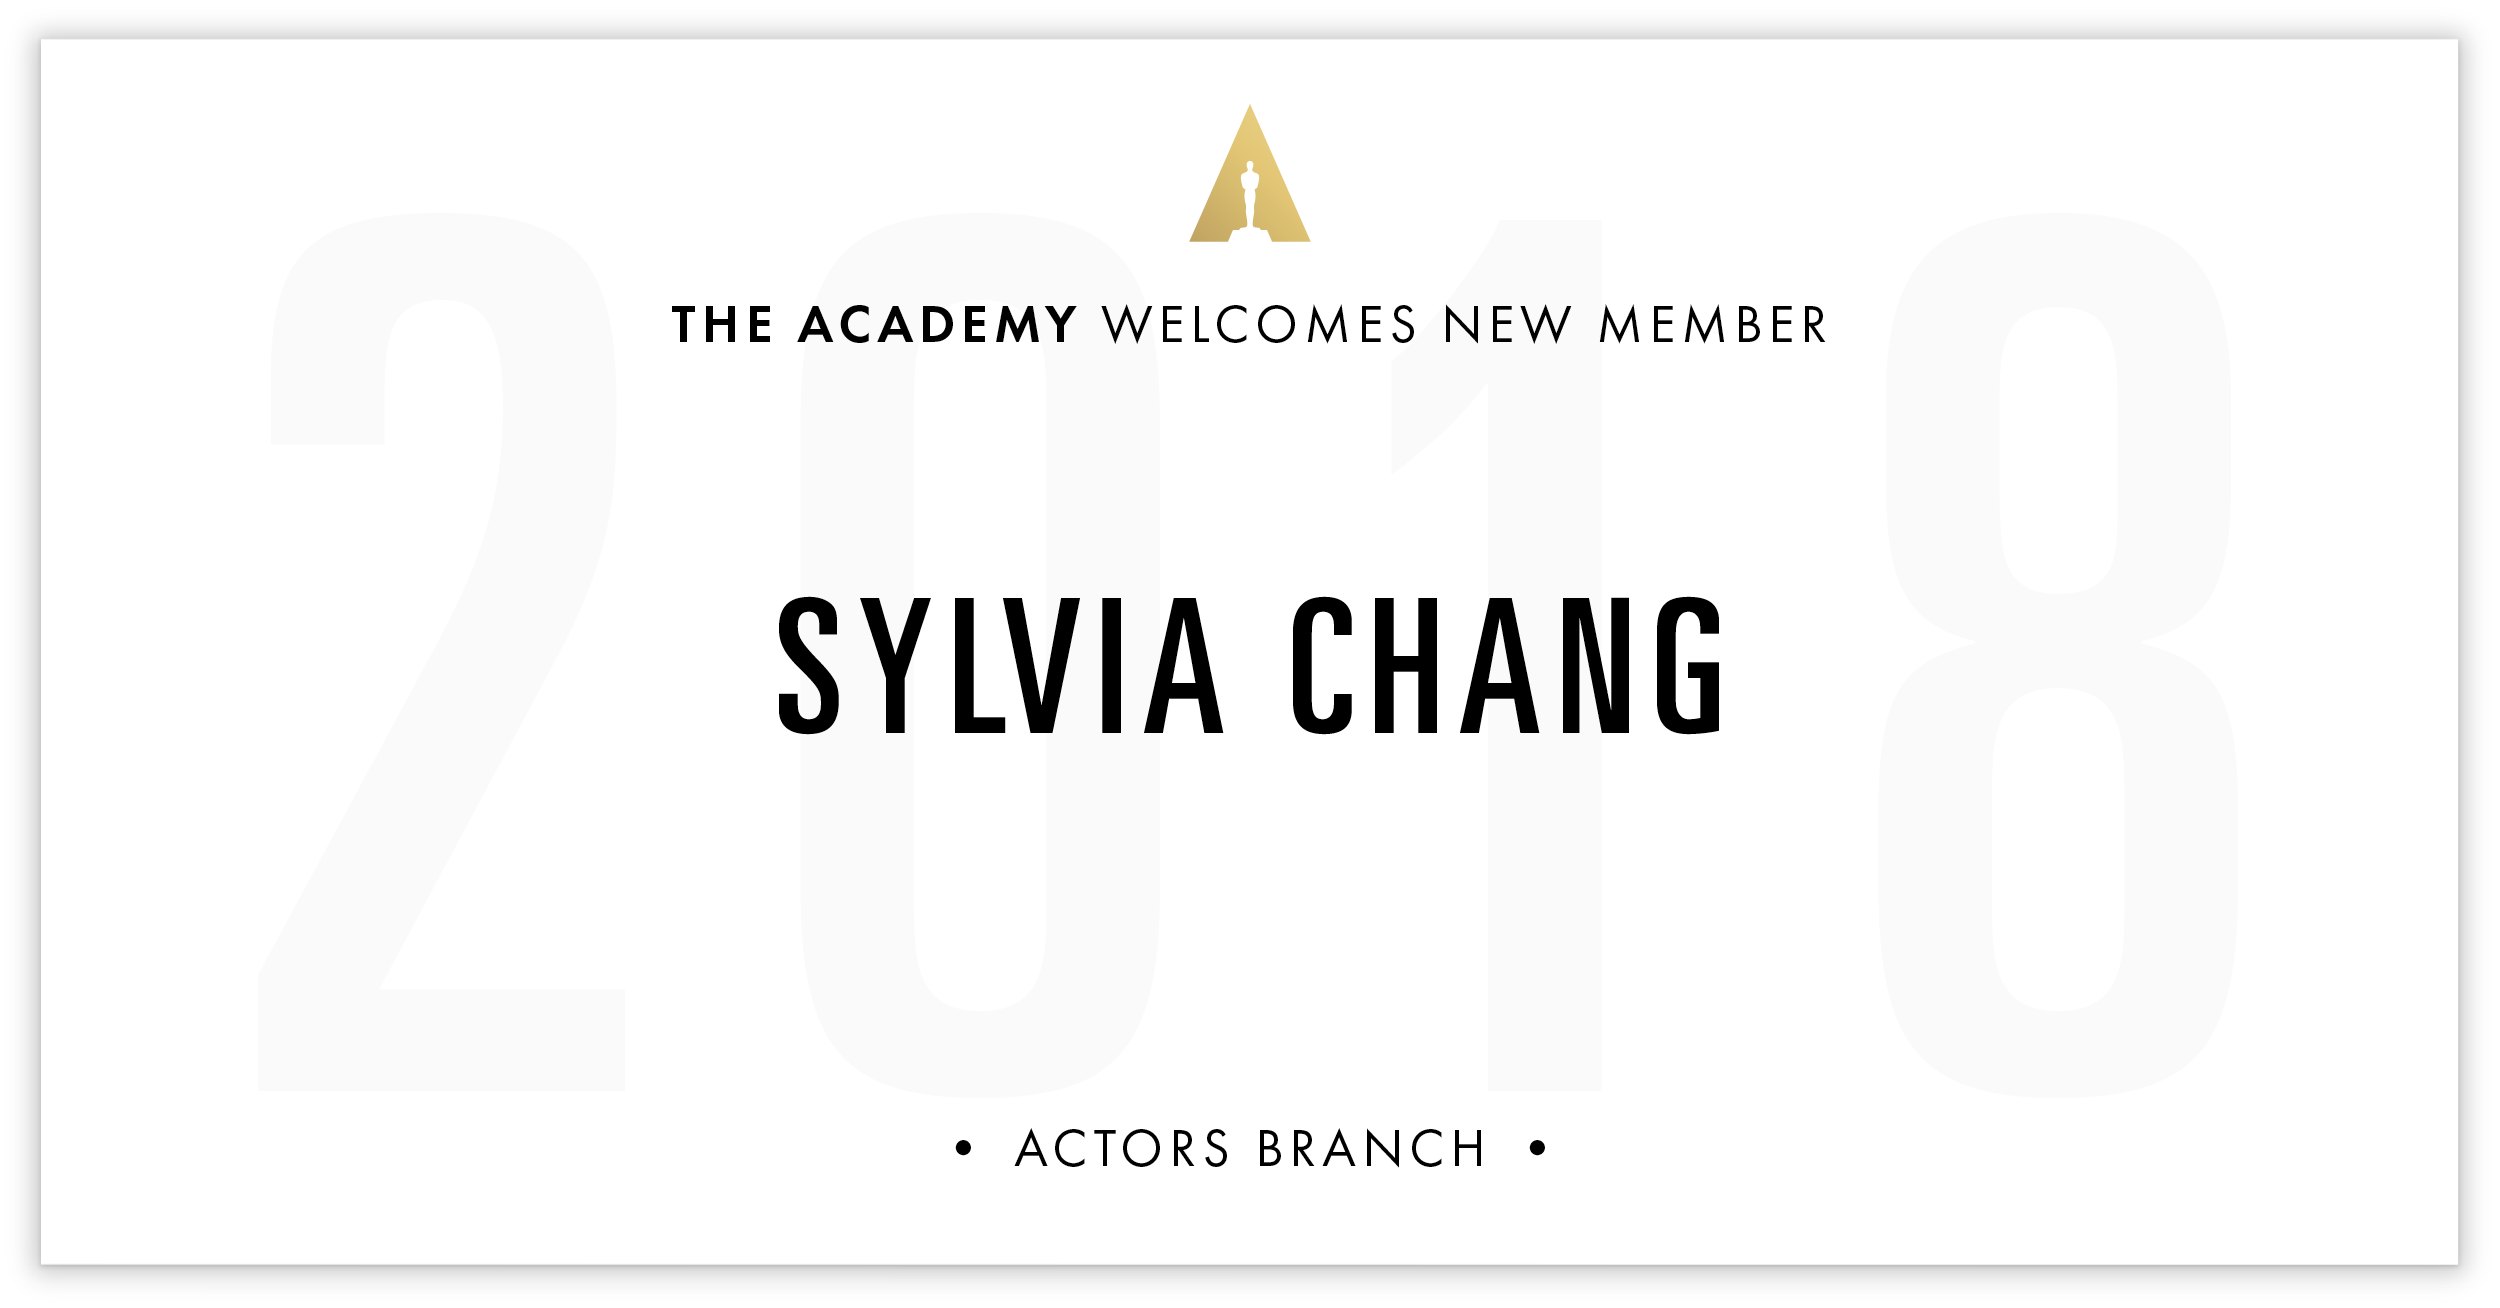 Sylvia Chang is invited!